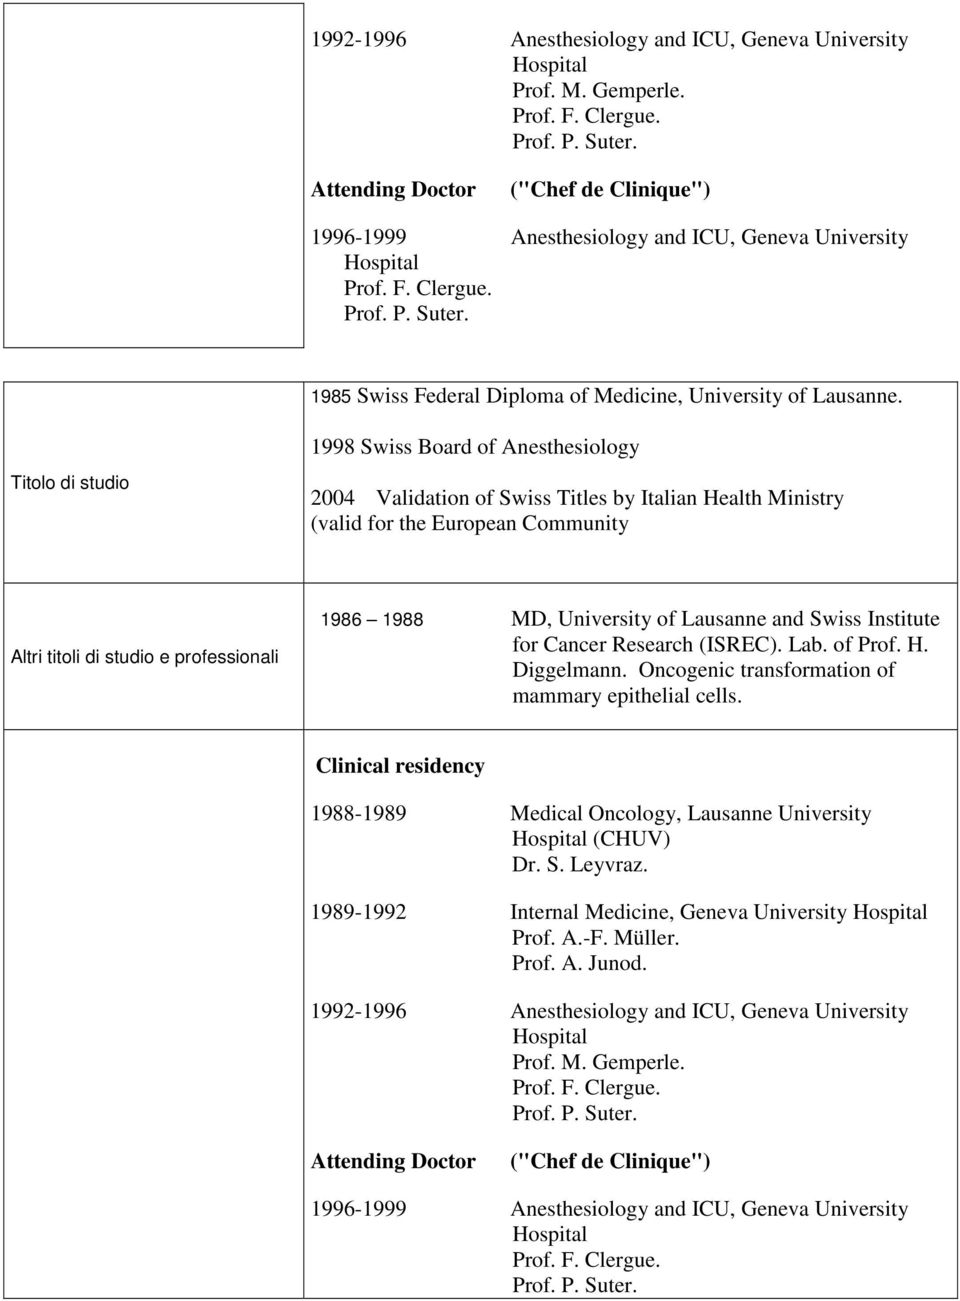 1998 Swiss Board of Anesthesiology Titolo di studio 2004 Validation of Swiss Titles by Italian Health Ministry (valid for the European Community Altri titoli di studio e professionali 1986 1988 MD,